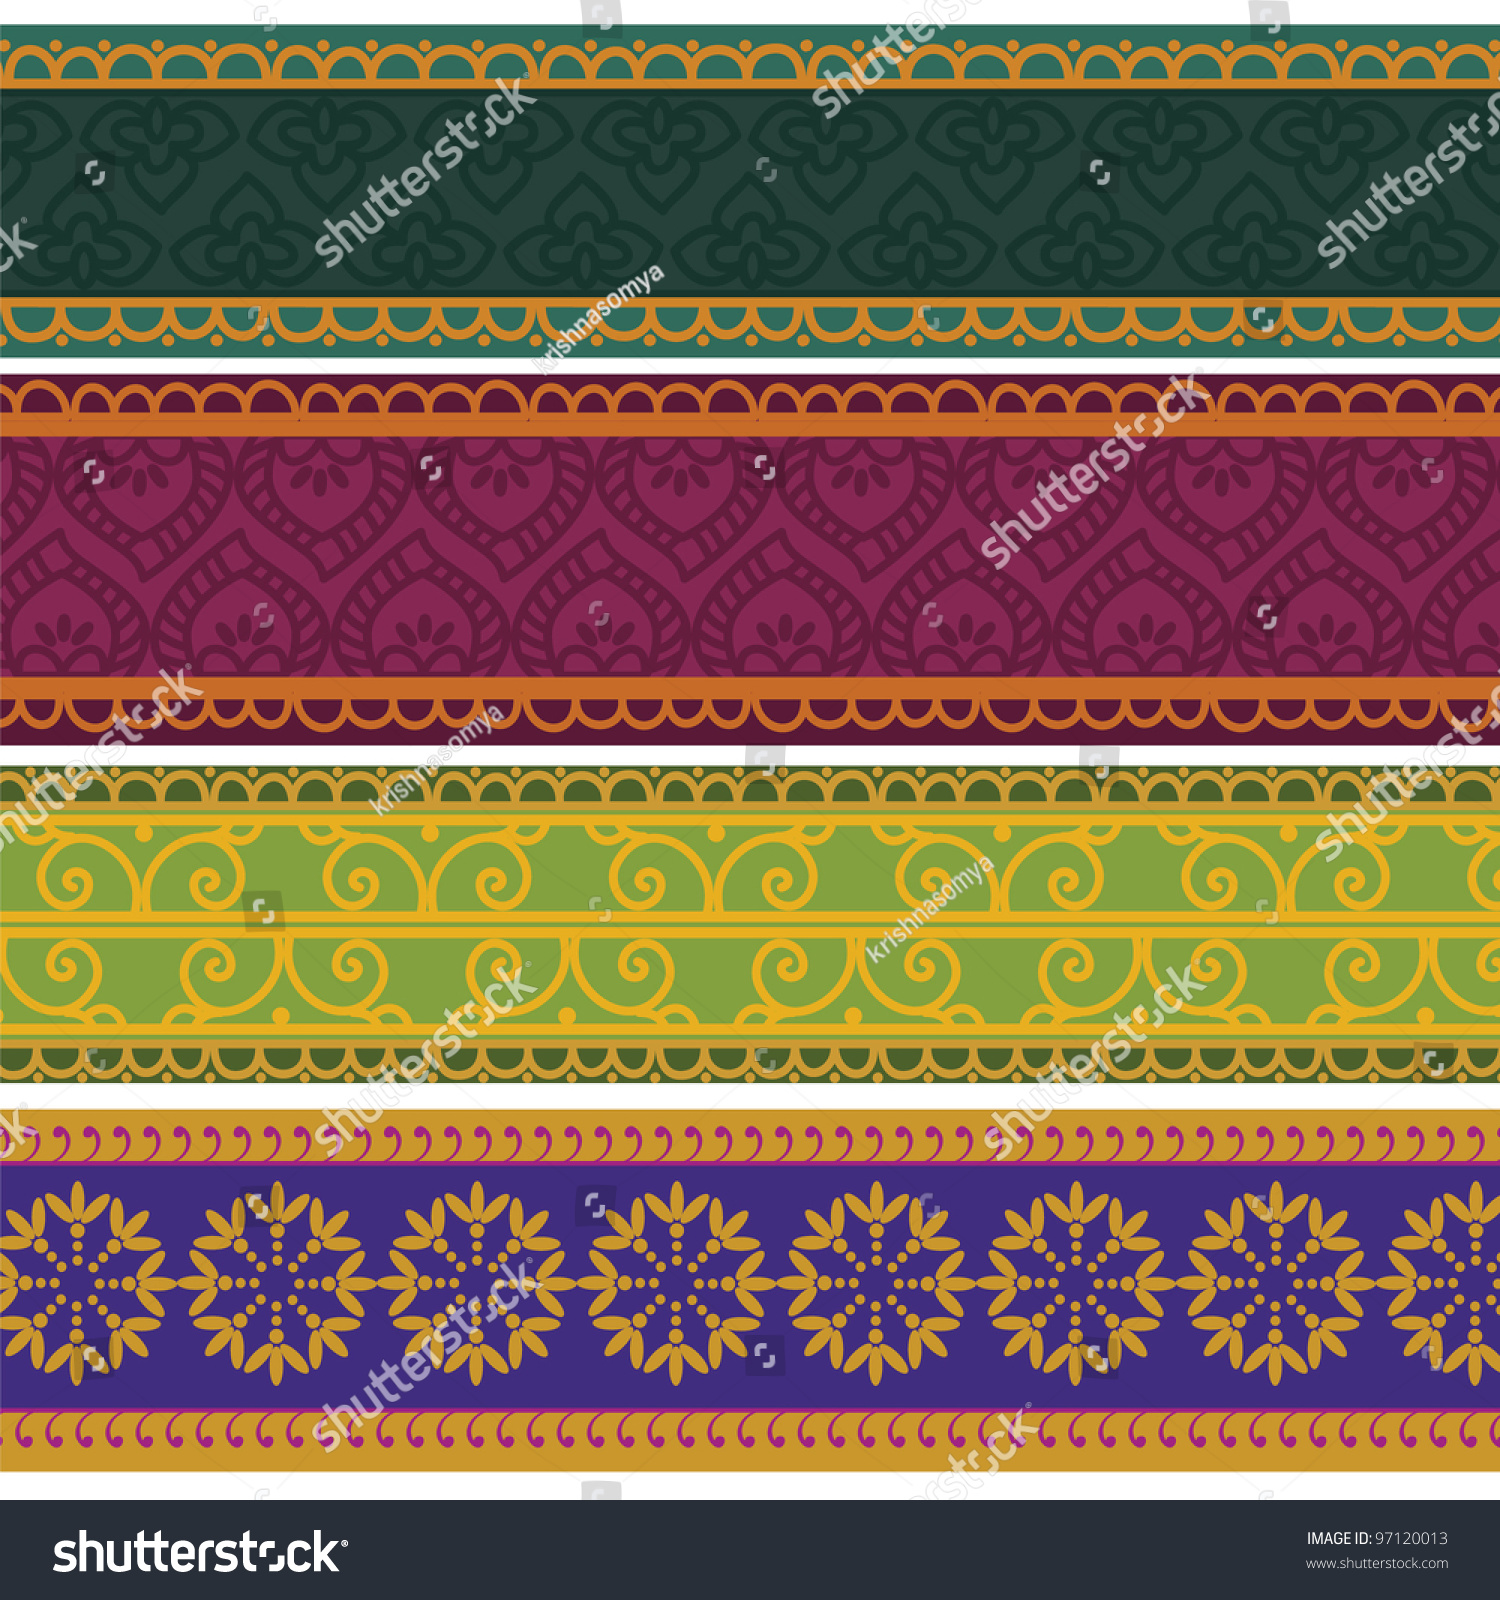 henna inspired banners borders - photo #13